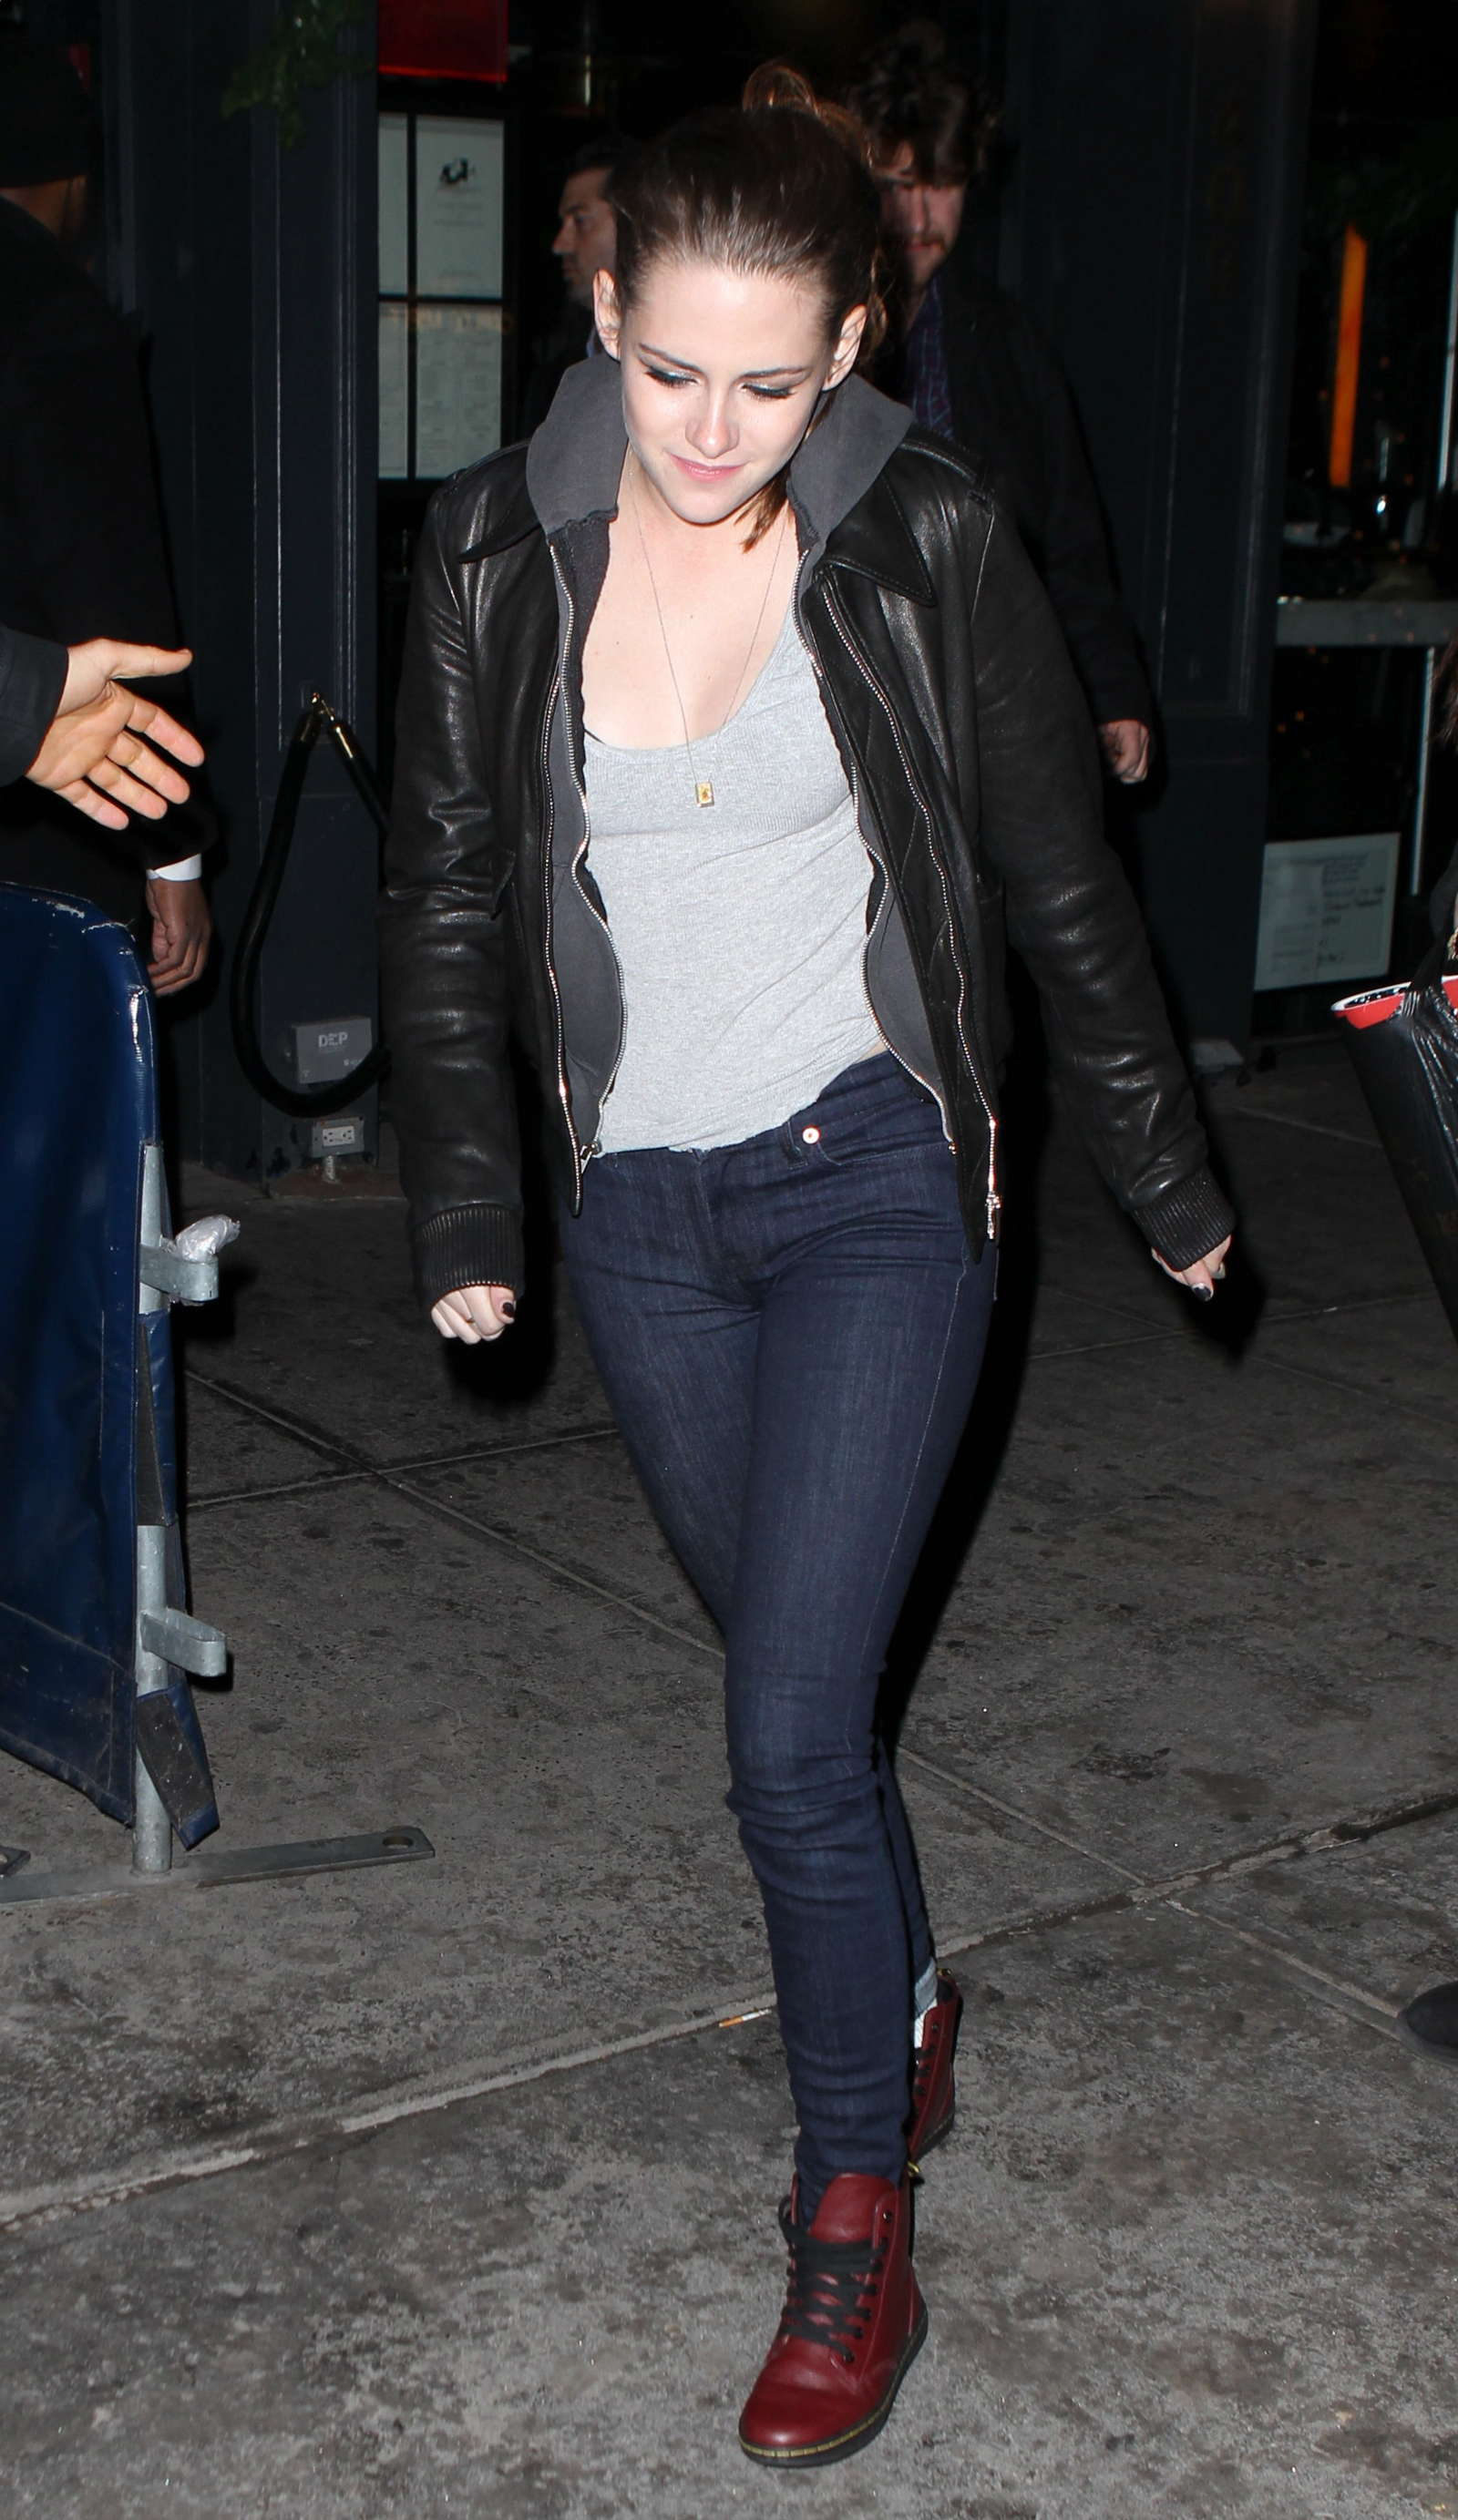 Kristen Stewart In Tight Jeans 02 Gotceleb